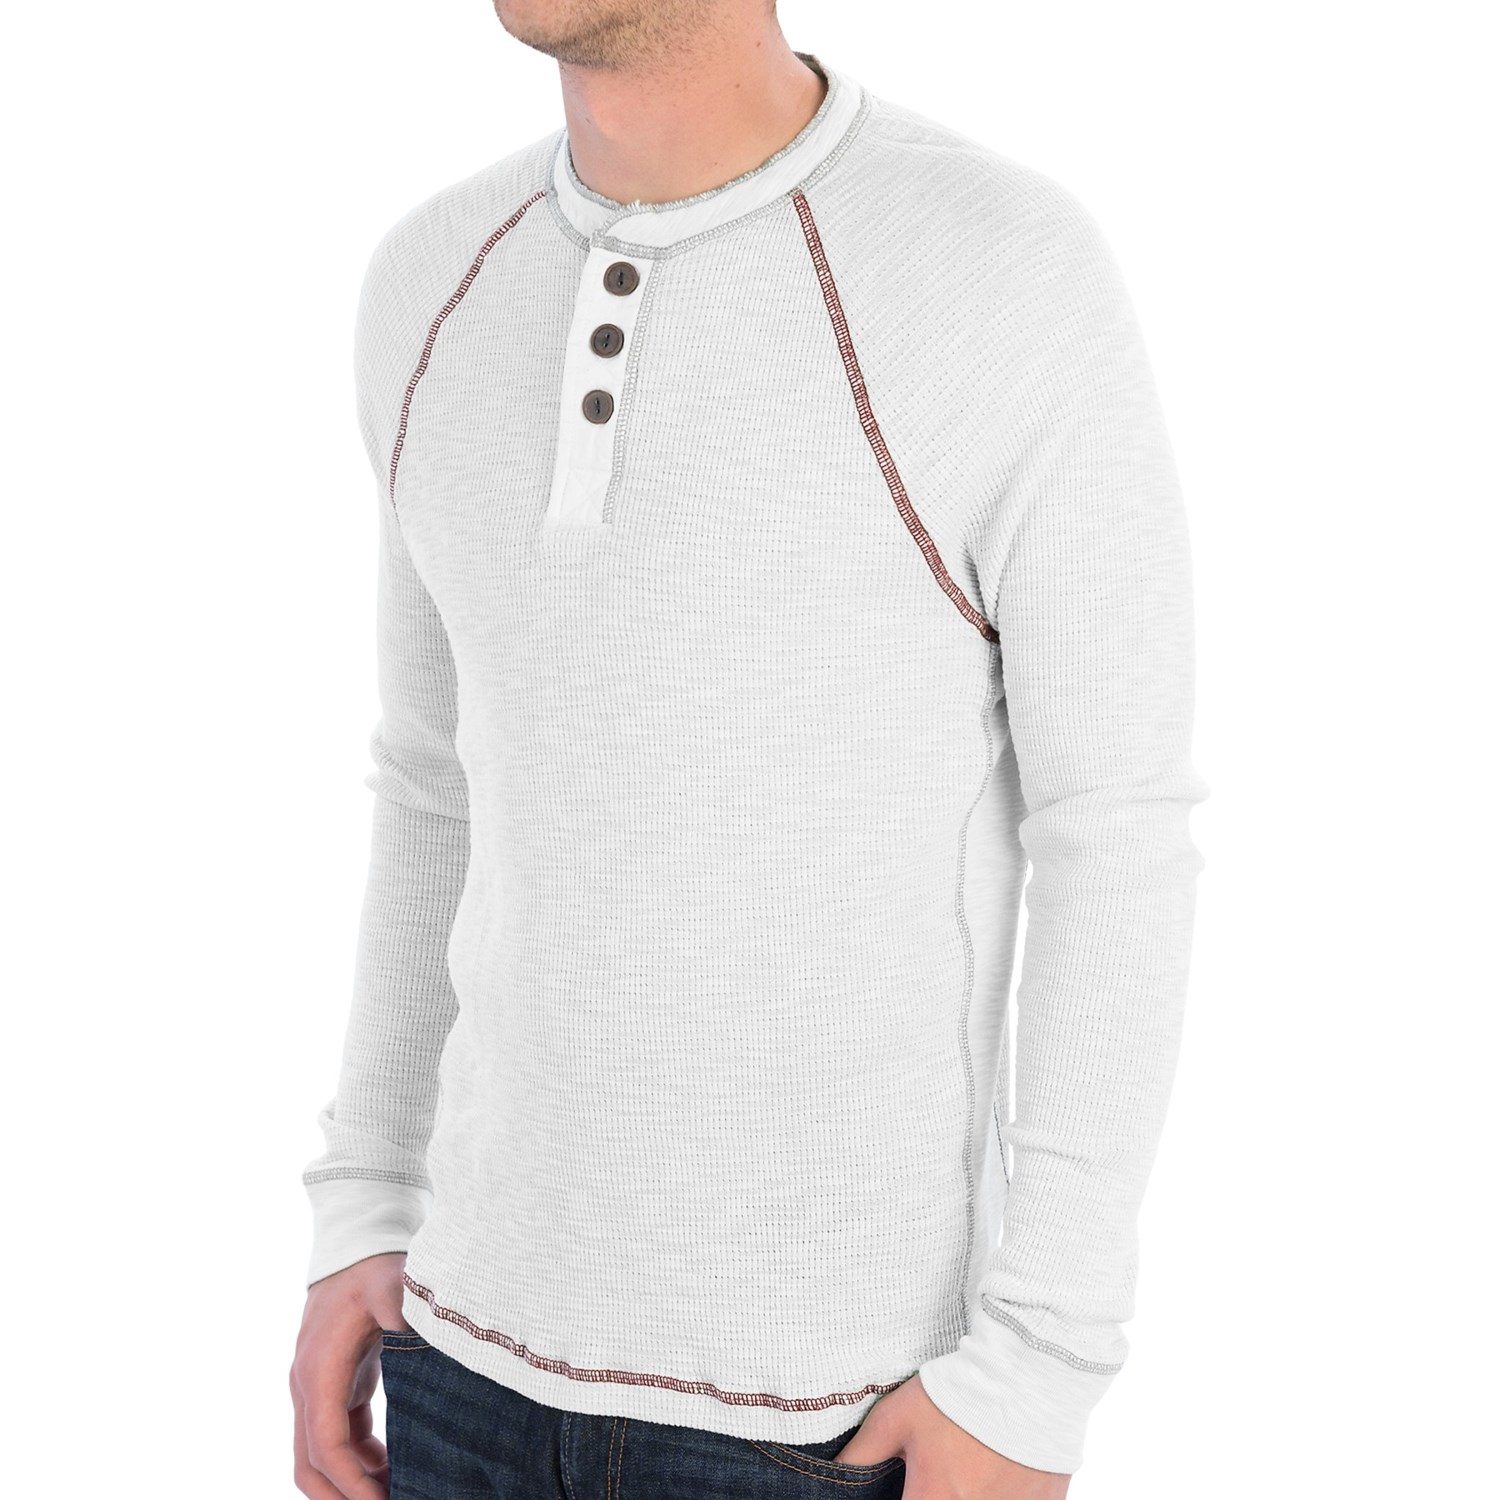 True grit waffle thermal henley shirt long sleeve for for Men s thermal henley long sleeve shirts